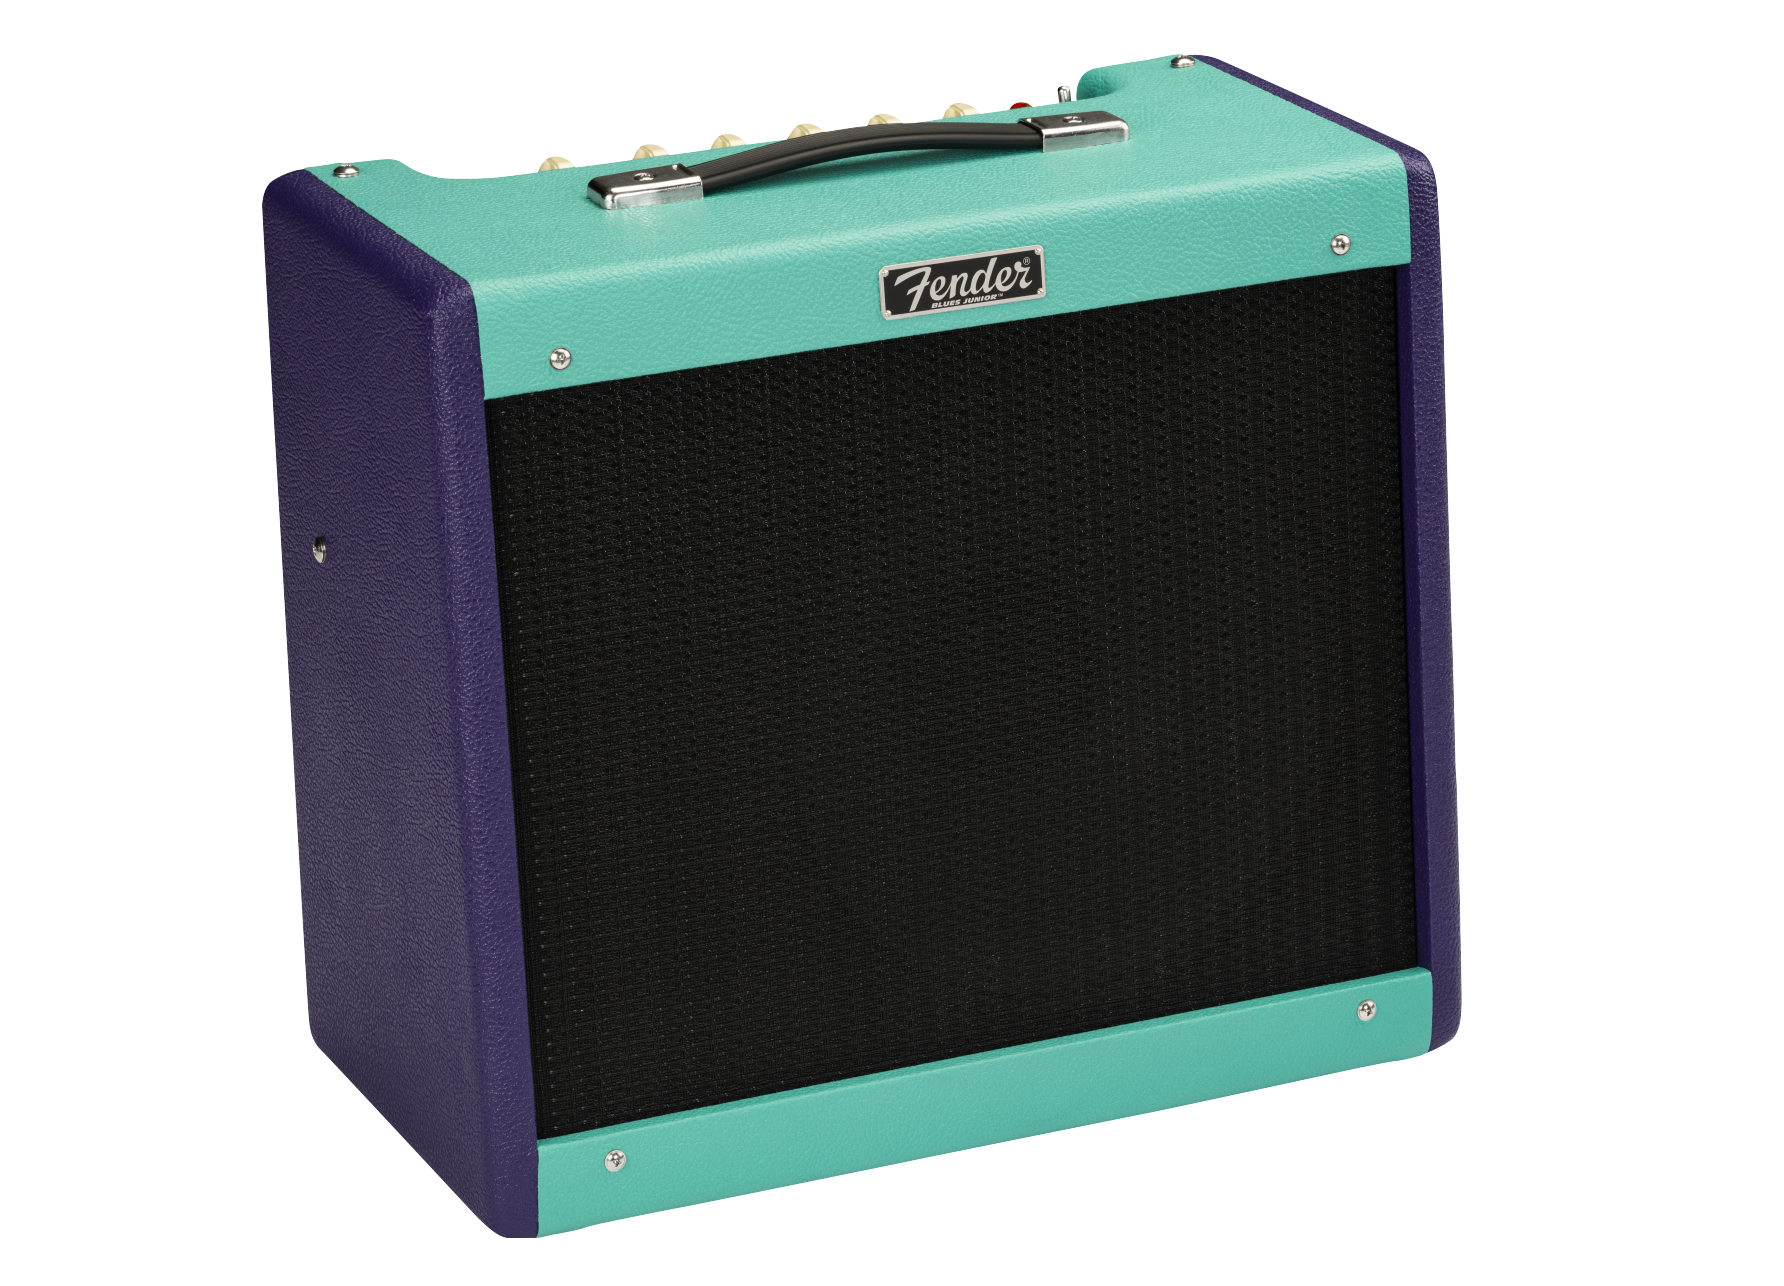 Fender Limited Edition Blues Junior IV, Eminence Cannabis Rex, Purple/Seafoam